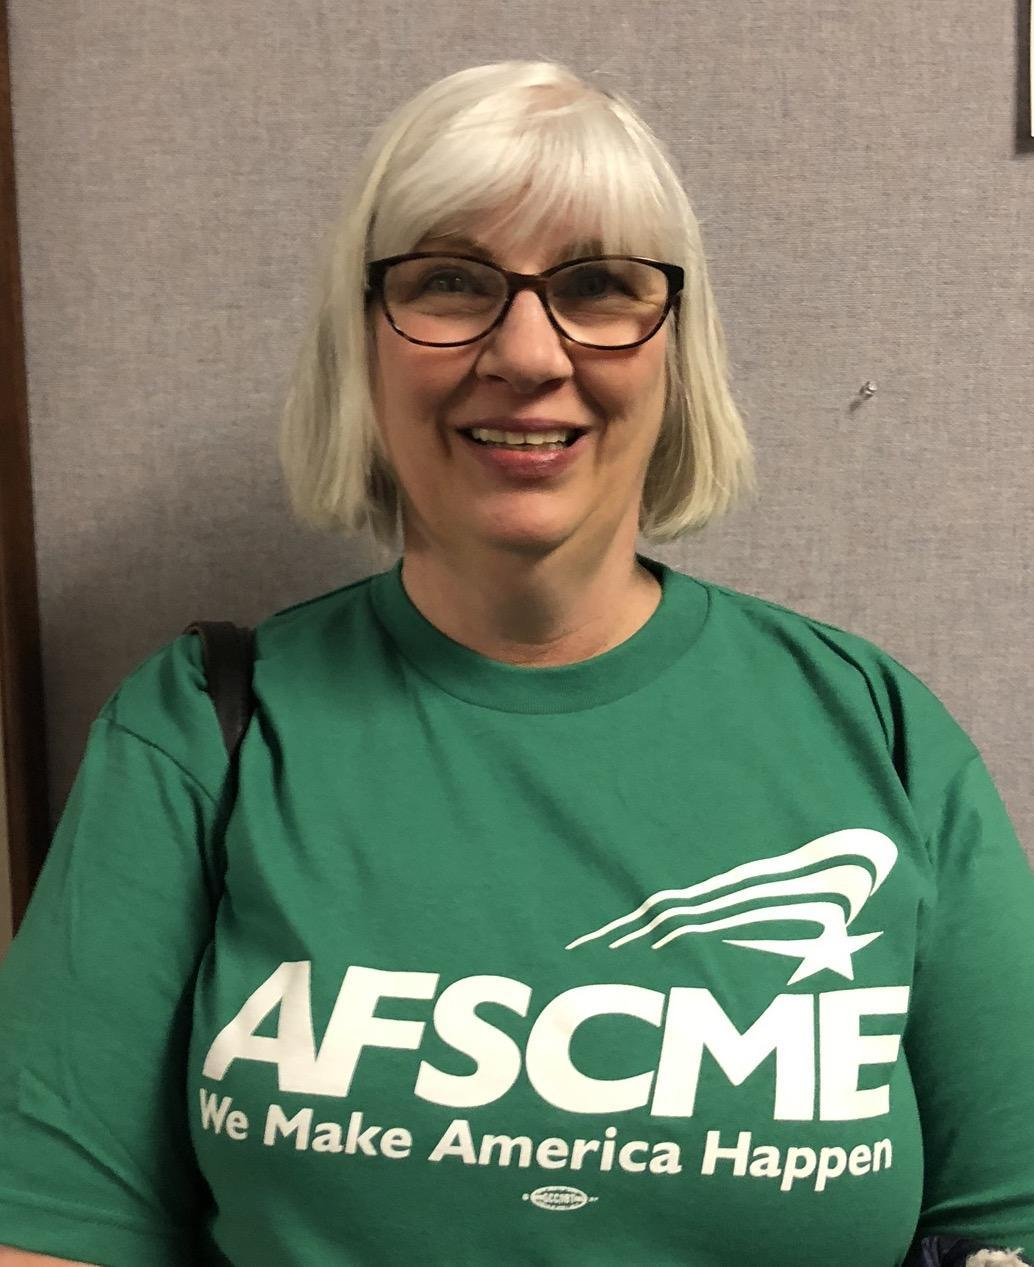 AFSCME Local 4041 member Valerie Osborn in support of SB135 collective bargaining rights for state employees